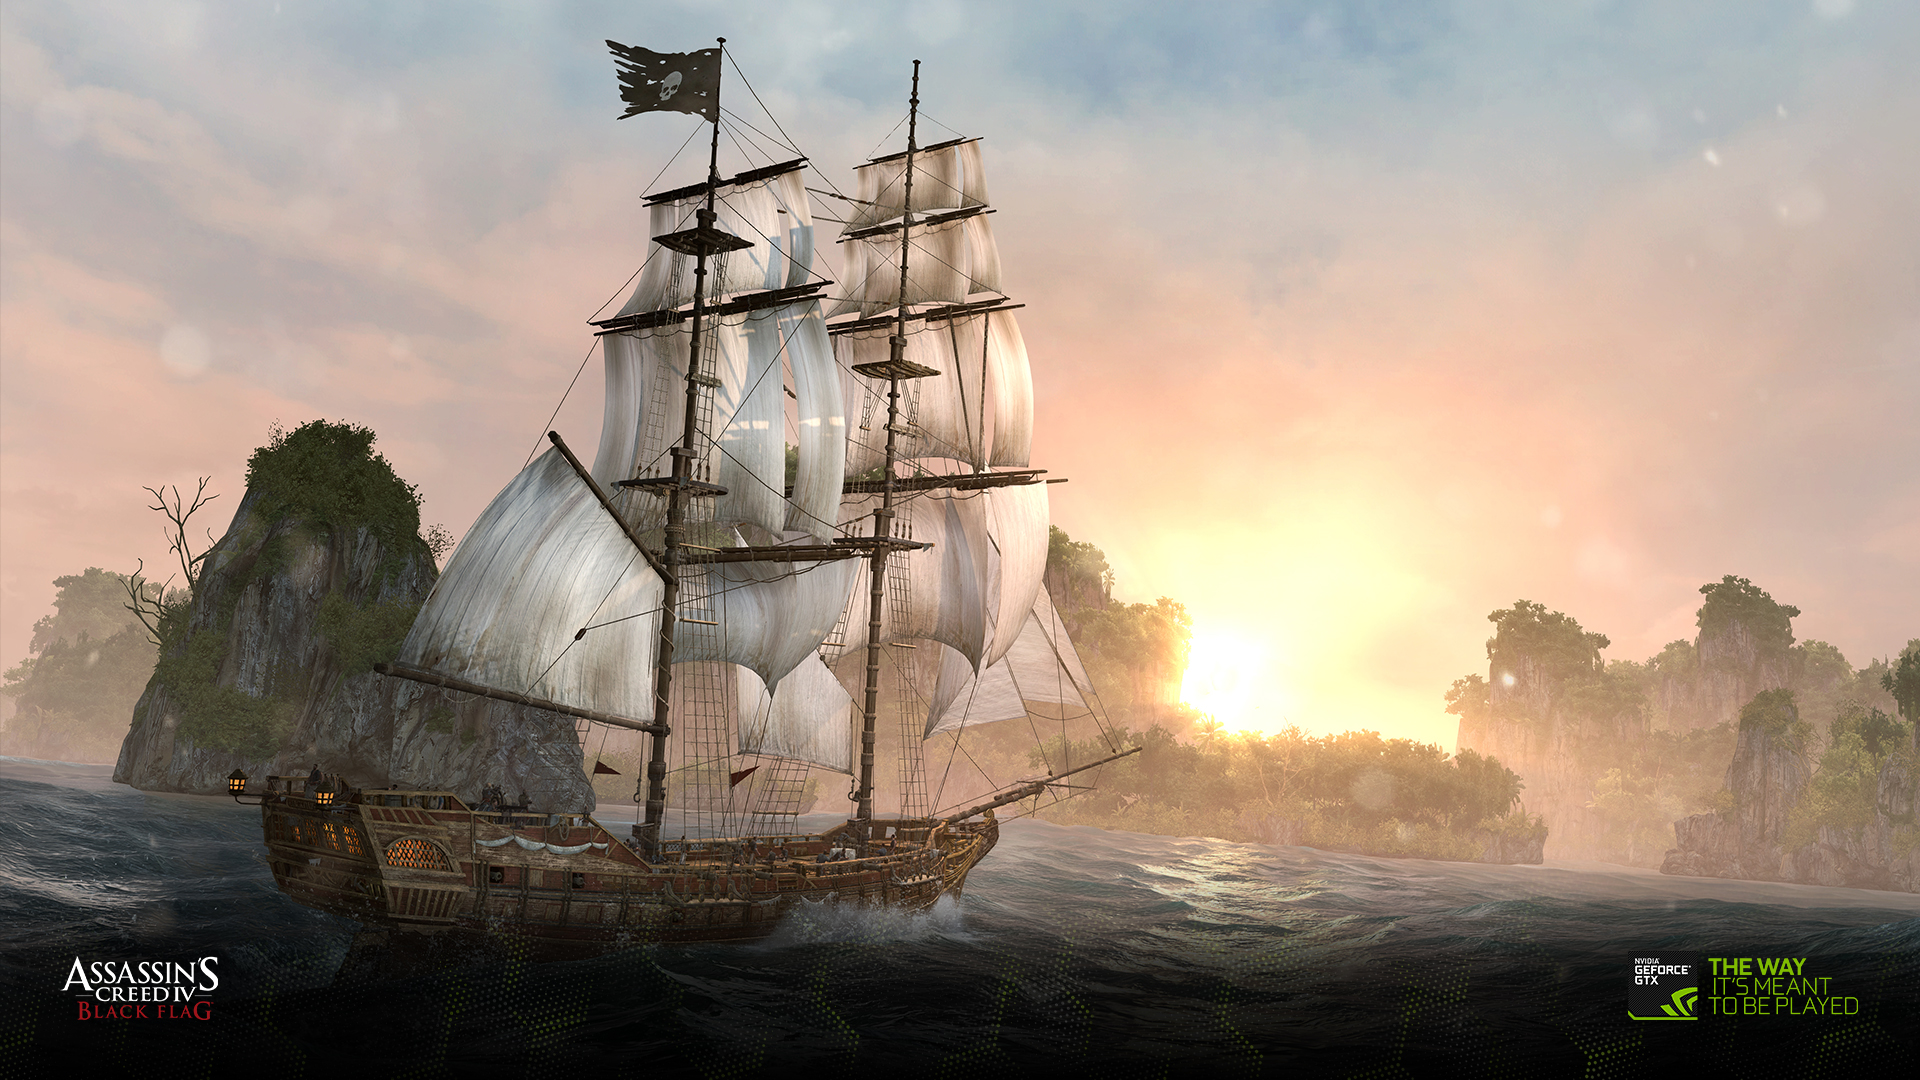 Stunning Black Wallpapers Download The Assassin S Creed Iv Black Flag Wallpapers